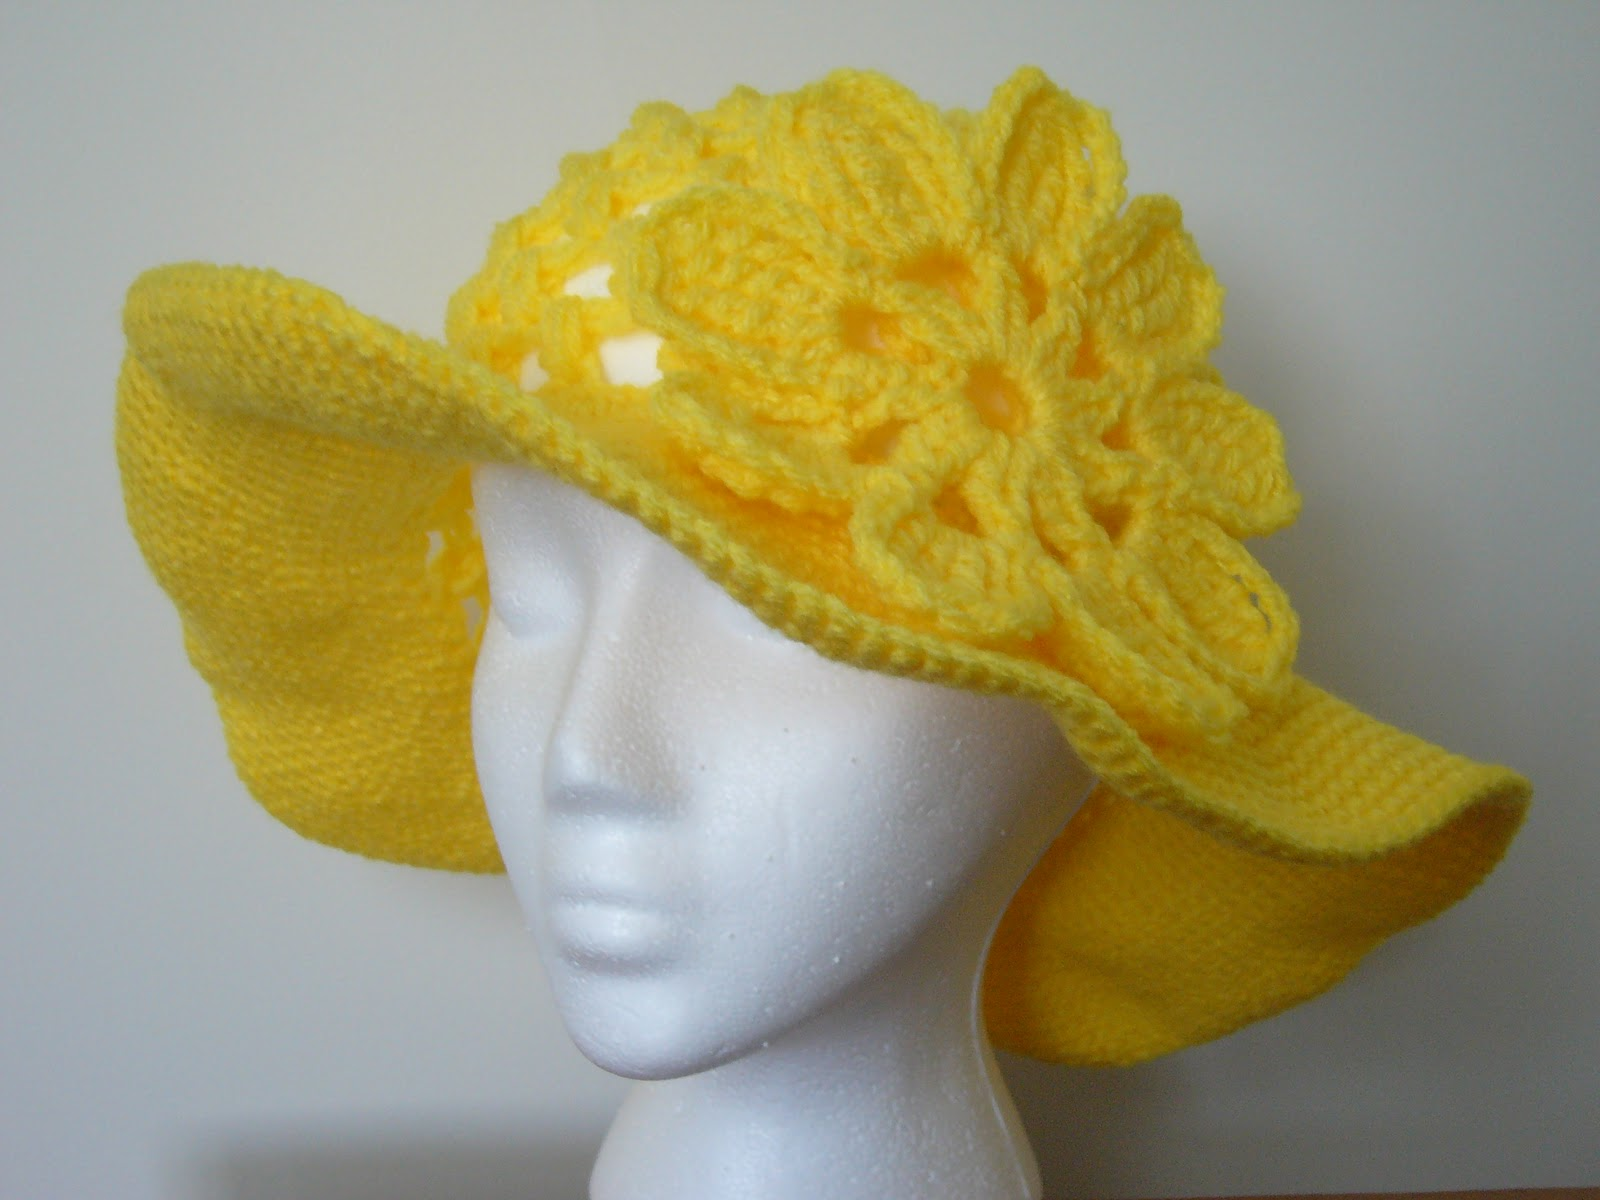 Free Crochet Pattern For Baby Floppy Hats : FLOPPY HAT CROCHET PATTERNS - Crochet and Knitting Patterns